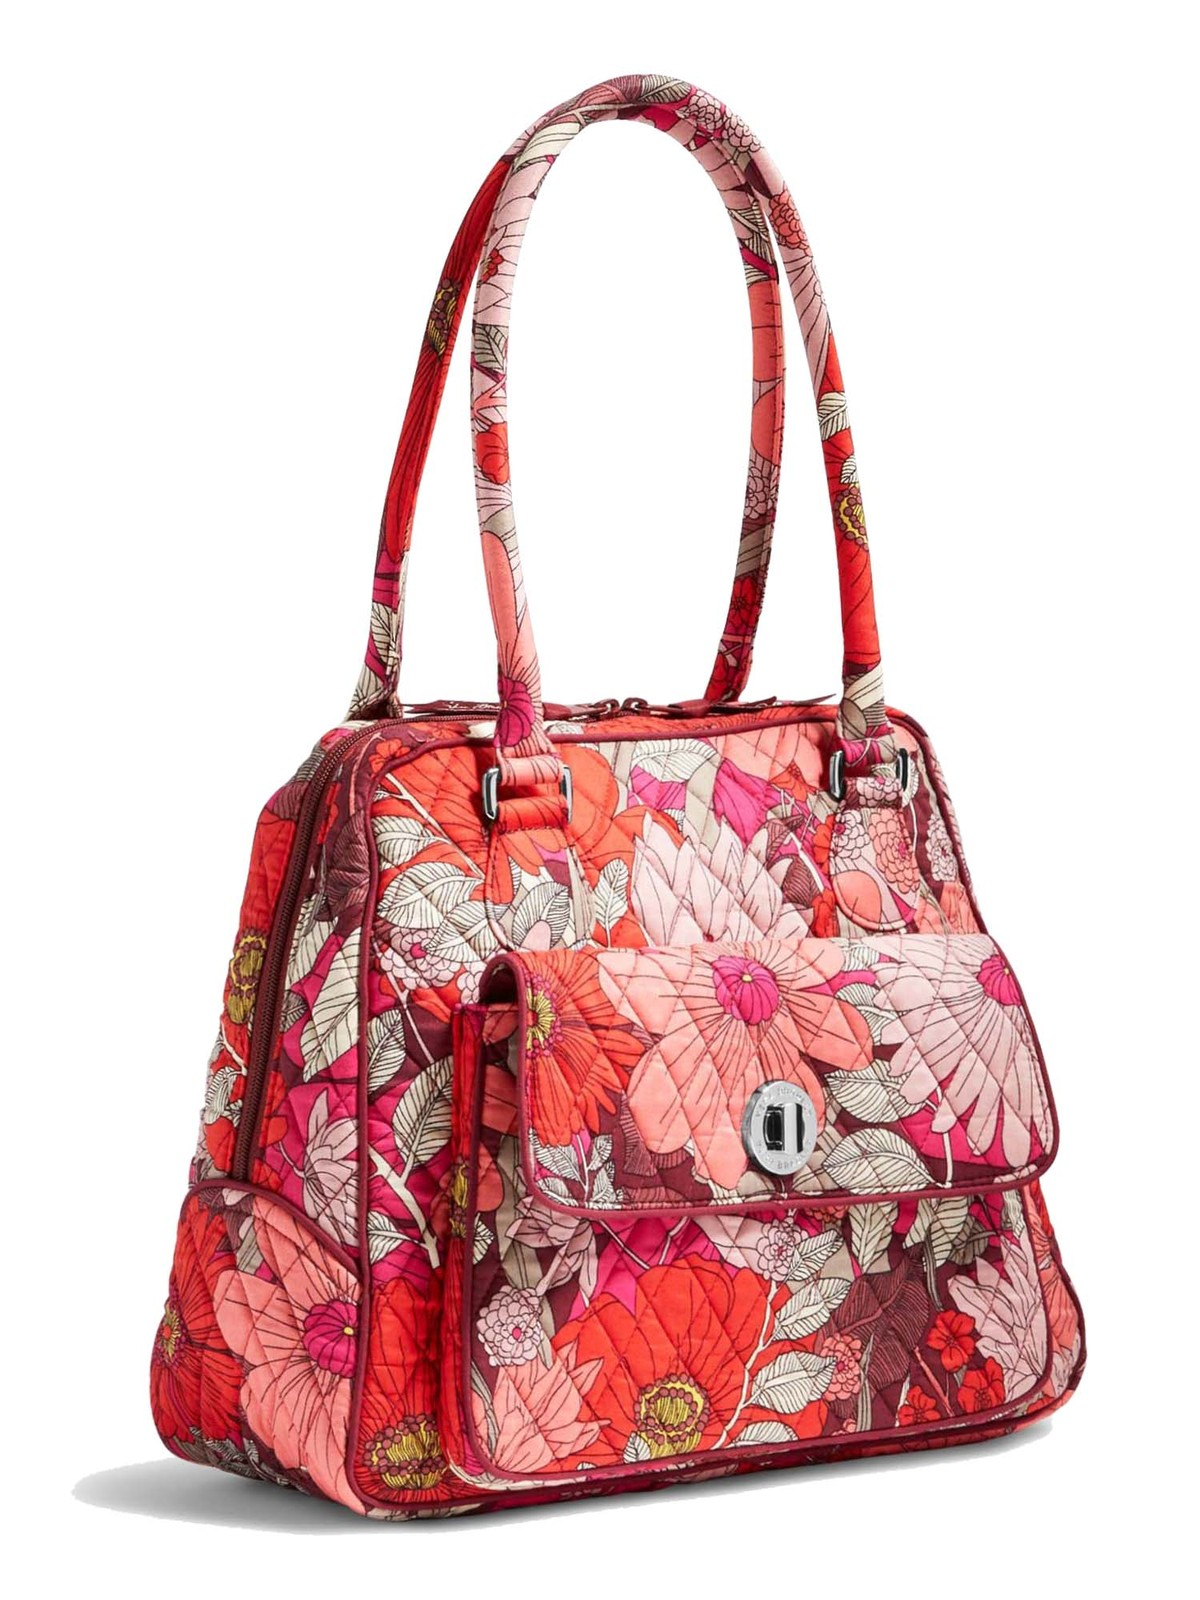 Vera Bradley Signature Cotton Turnlock Satchel Bag, Bohemian Blooms